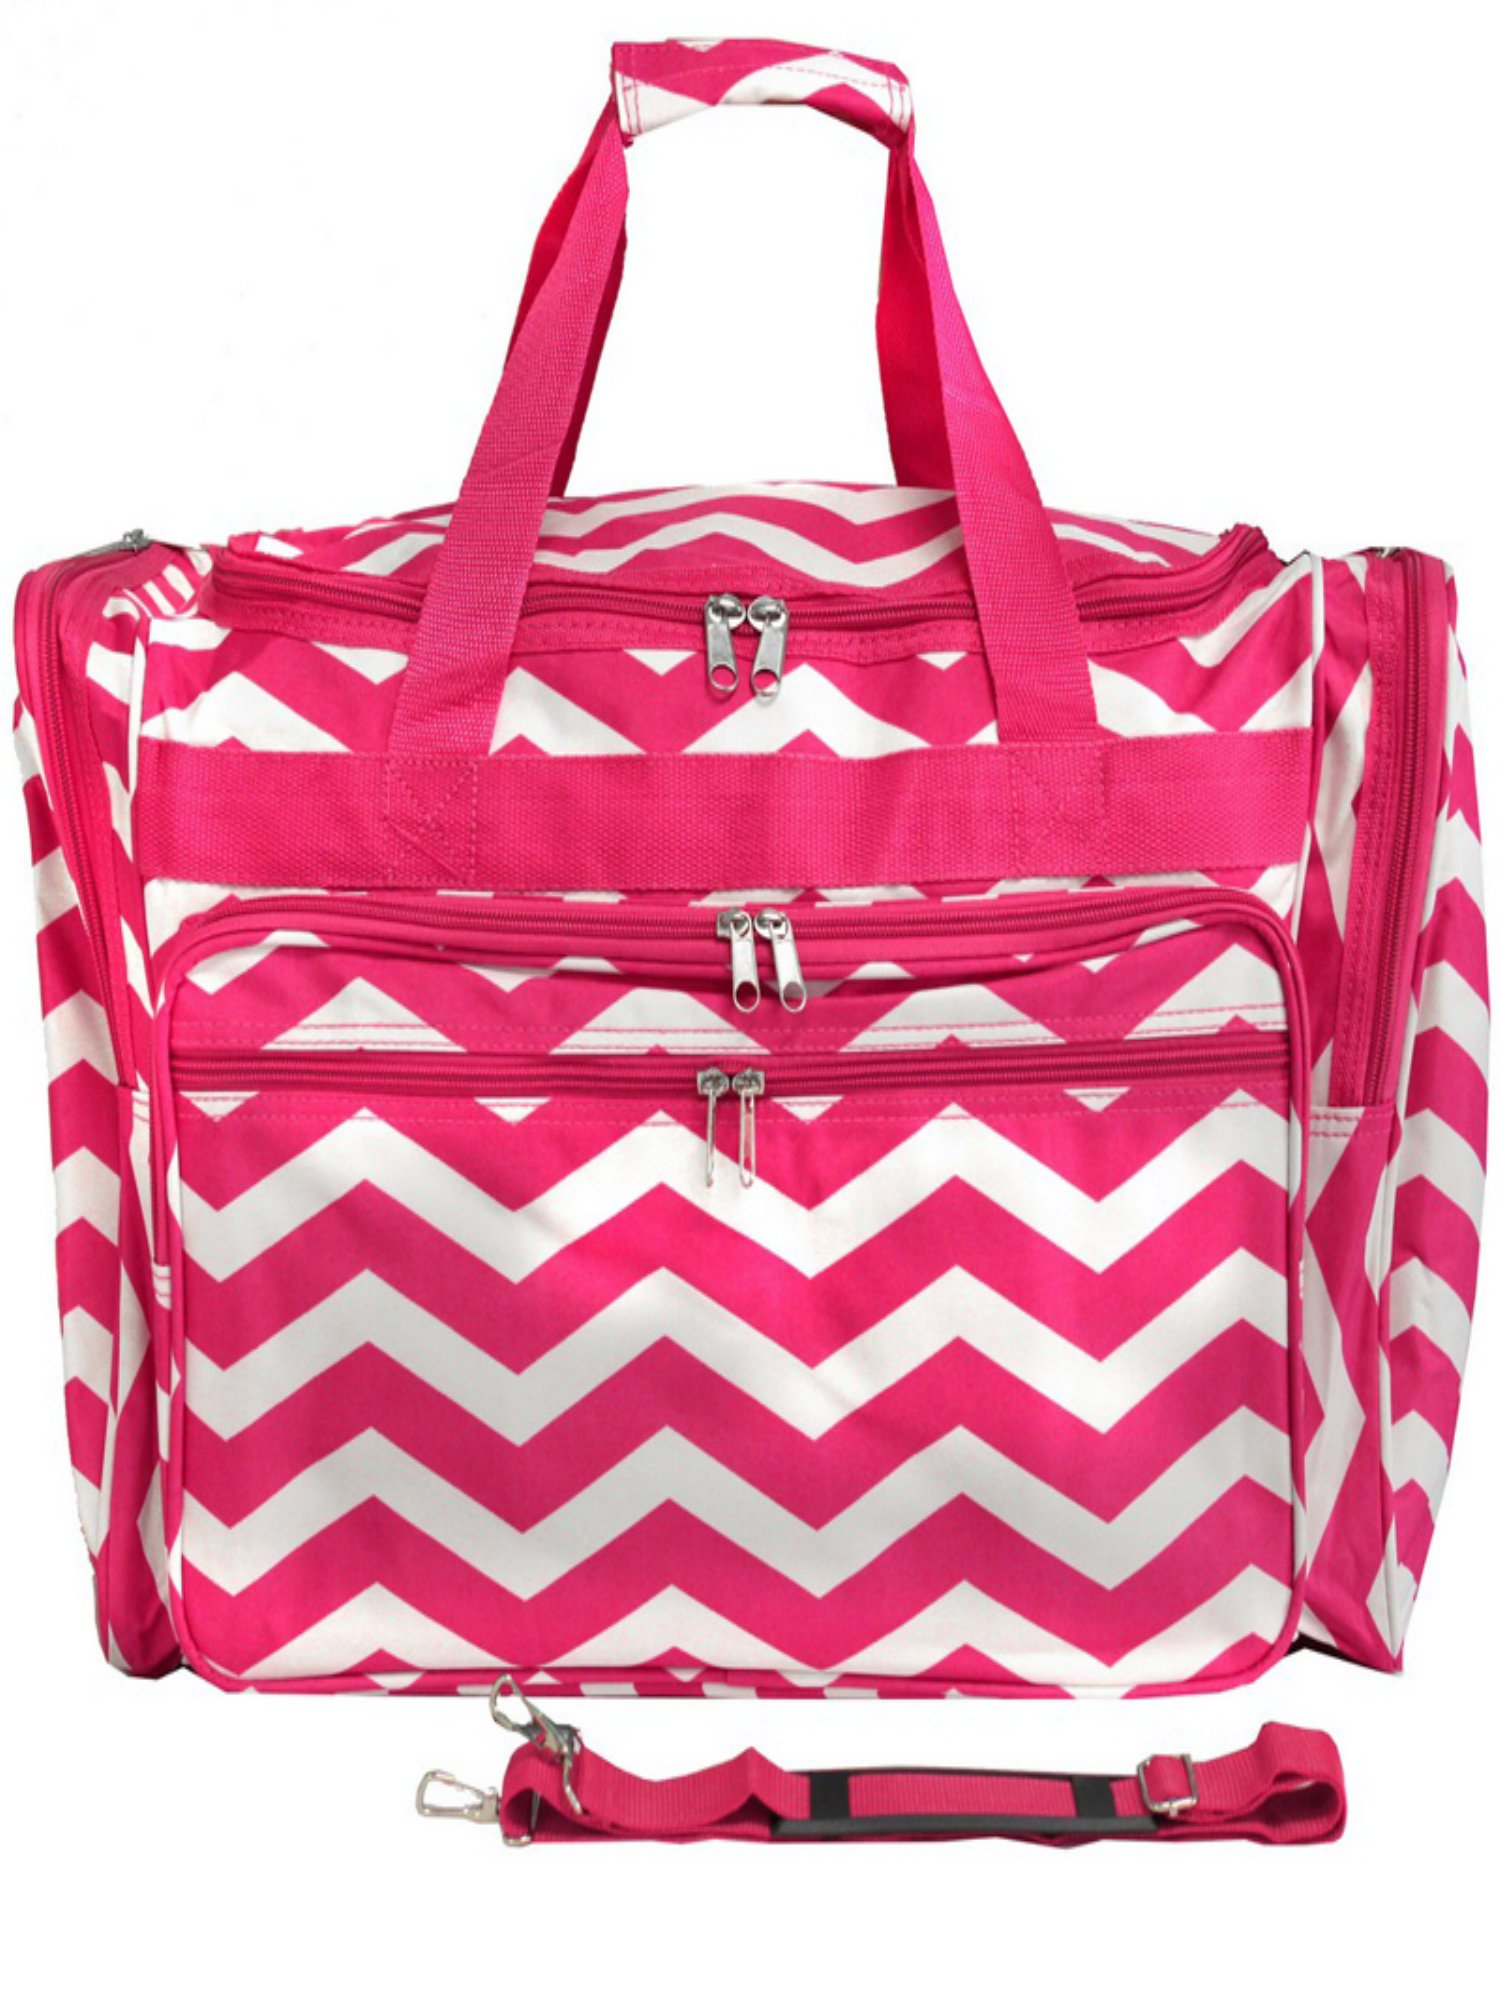 World Traveler Chevron 22 in. Travel Duffel Bag by World Traveler